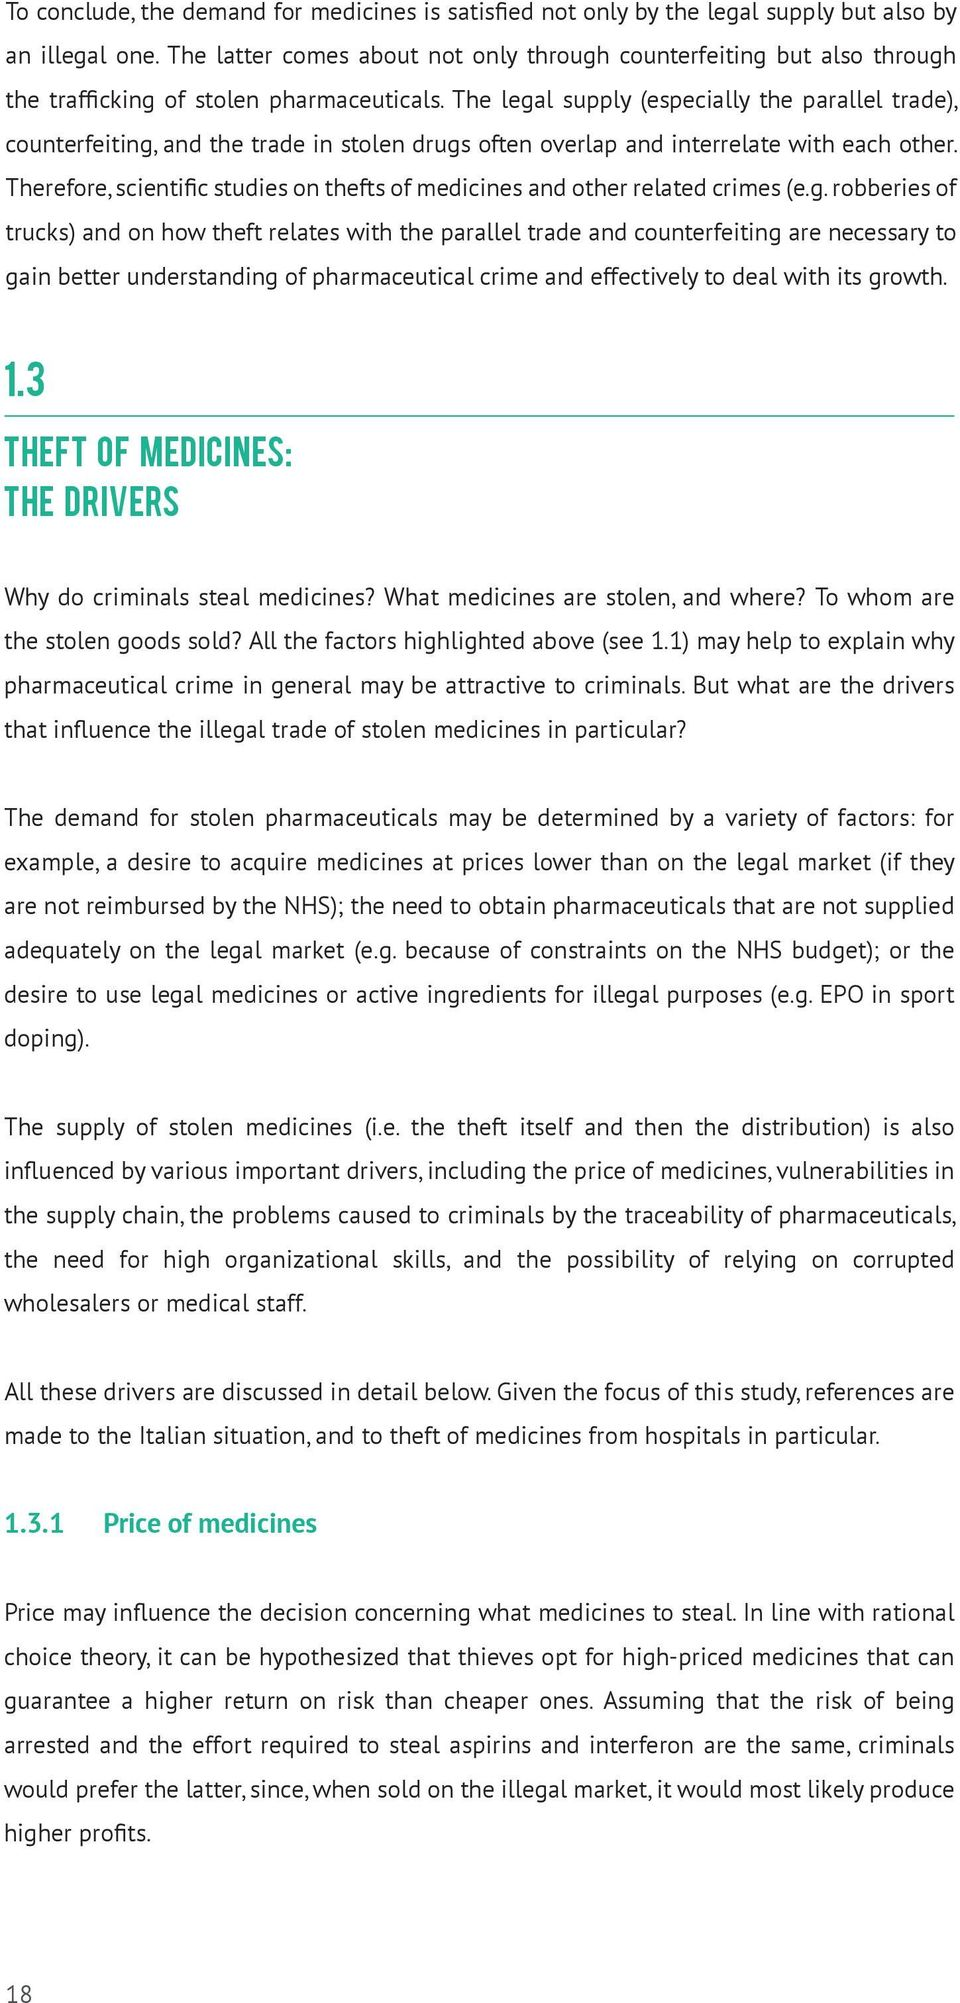 The legal supply (especially the parallel trade), counterfeiting, and the trade in stolen drugs often overlap and interrelate with each other.